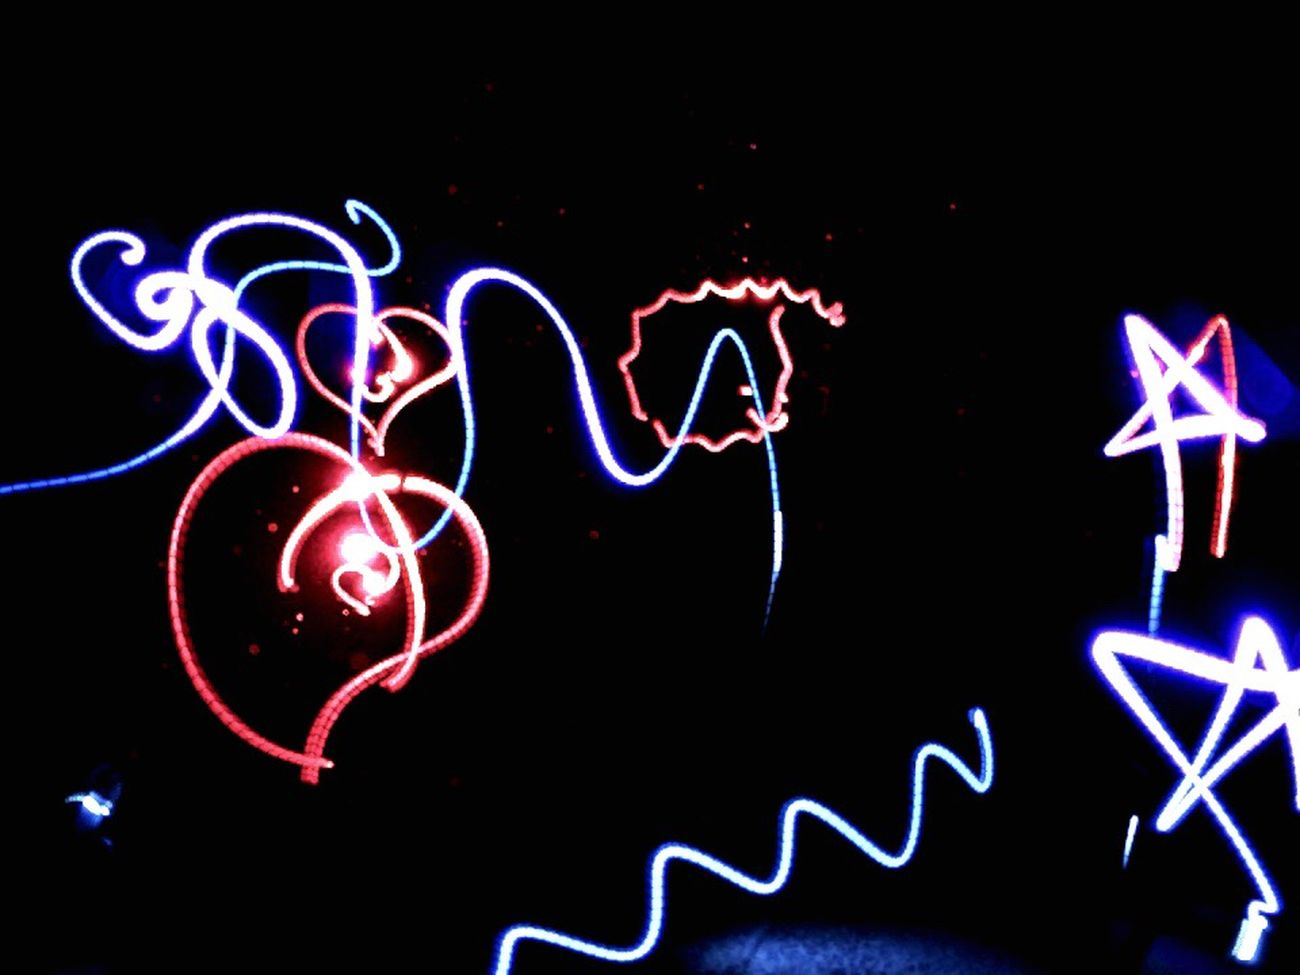 Fooling Around With Lights Light Painting Slow Shutter Long Exposure Iphone6 Experimenting With Different Effects Experimental Photography Learning Photography Iphoneograpy Iphoneonly Lightpaintingphotography Eyeemphotography Neons